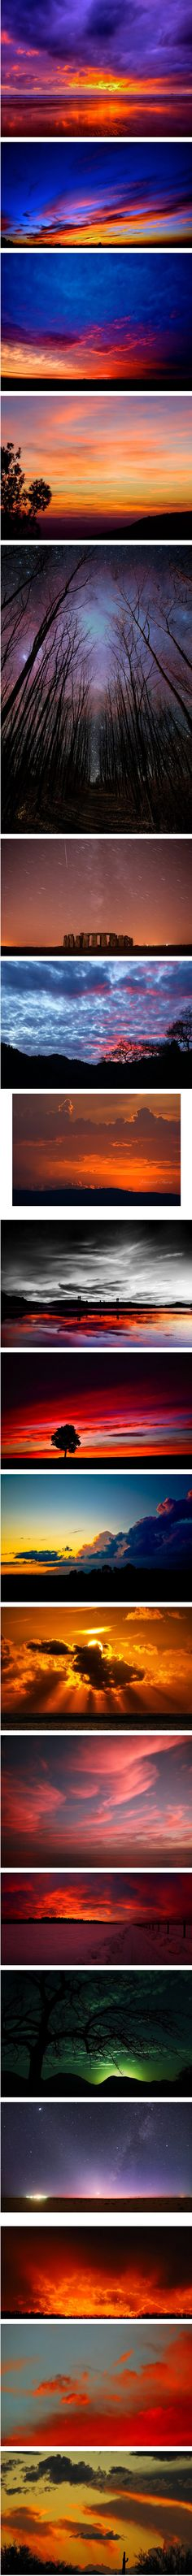 beautiful images of sunrise and sunsets #photography #nature